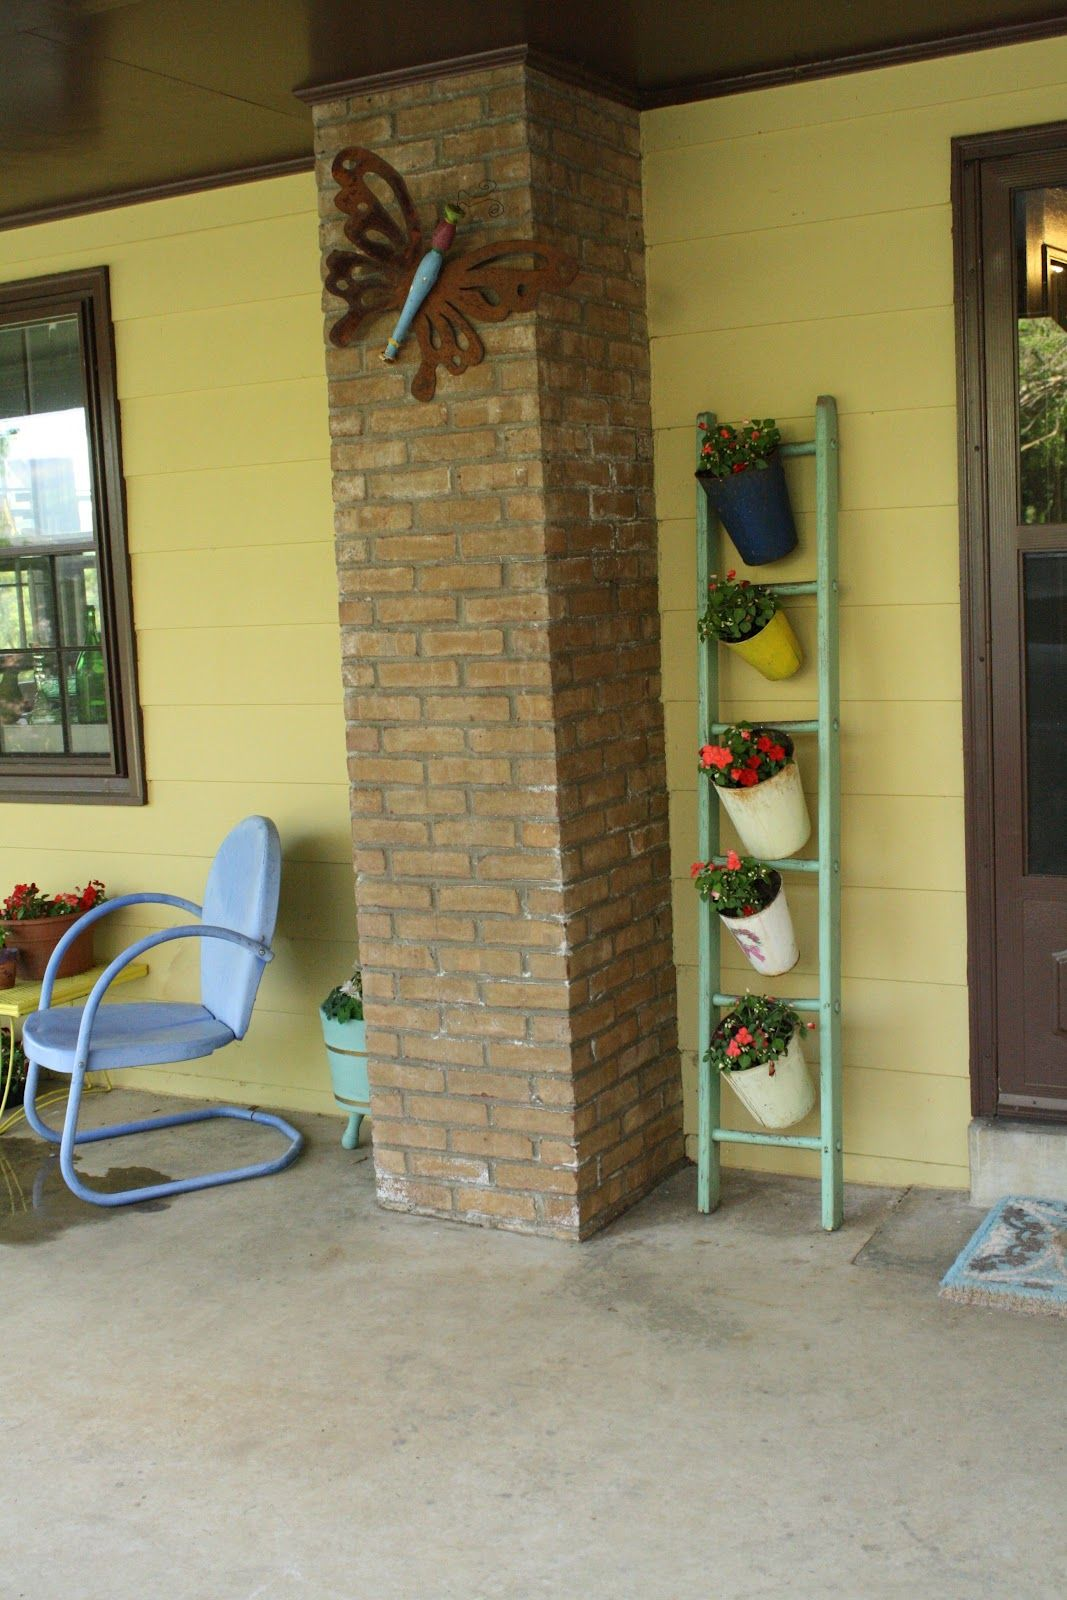 Thrifty Finds to Spruce up the Porch